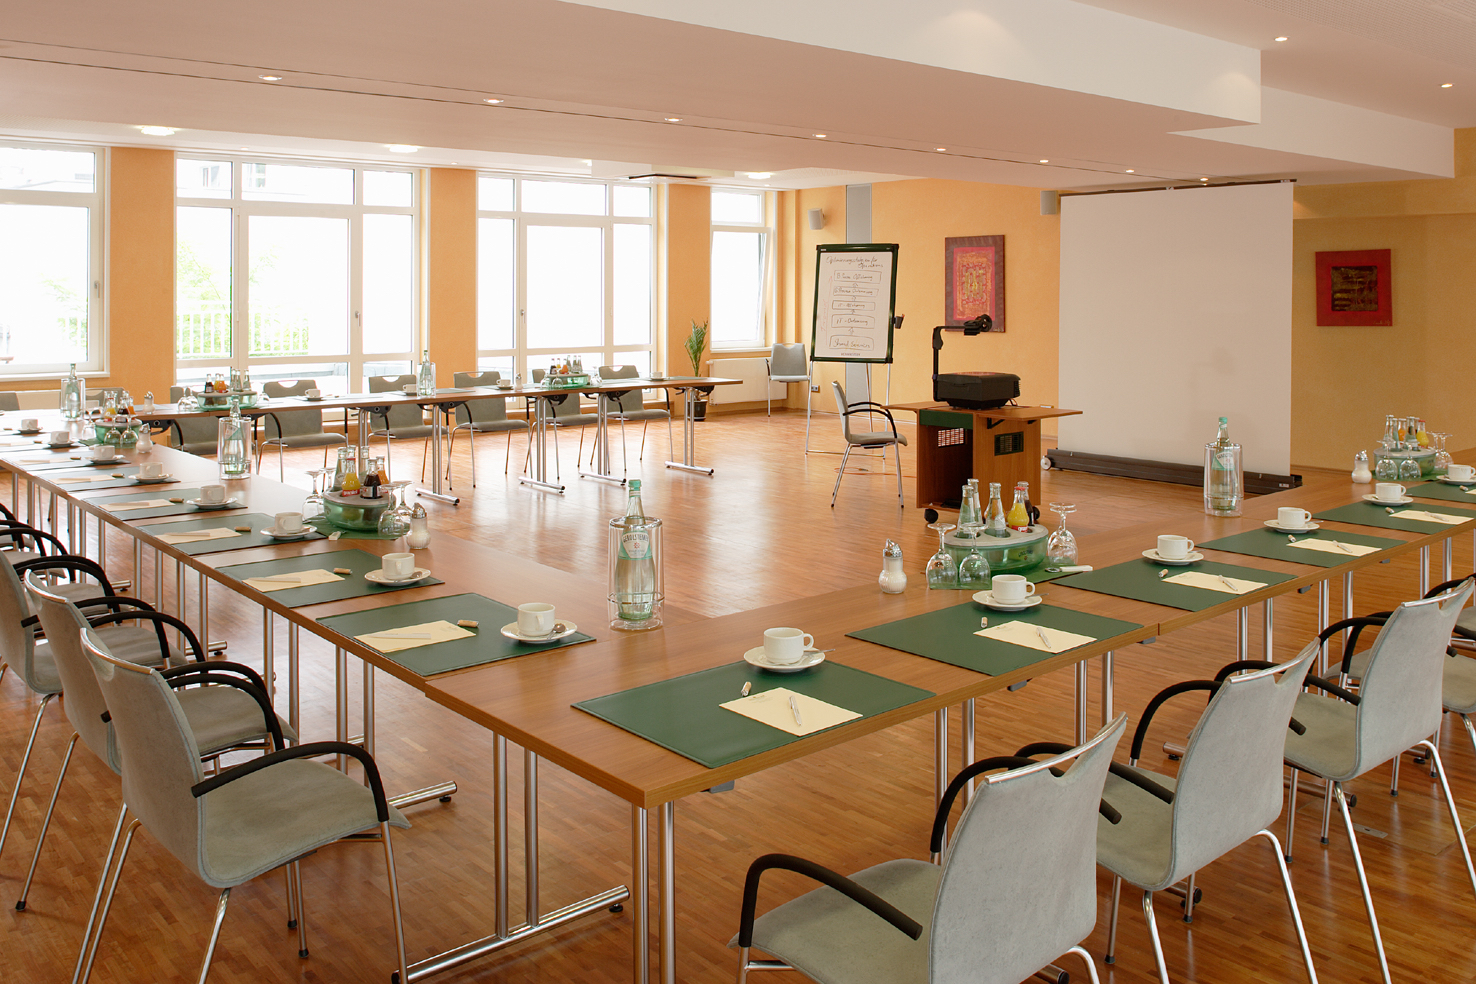 Hotel Loccumer Hof - Conference rooms up to 100 persons - fiylo